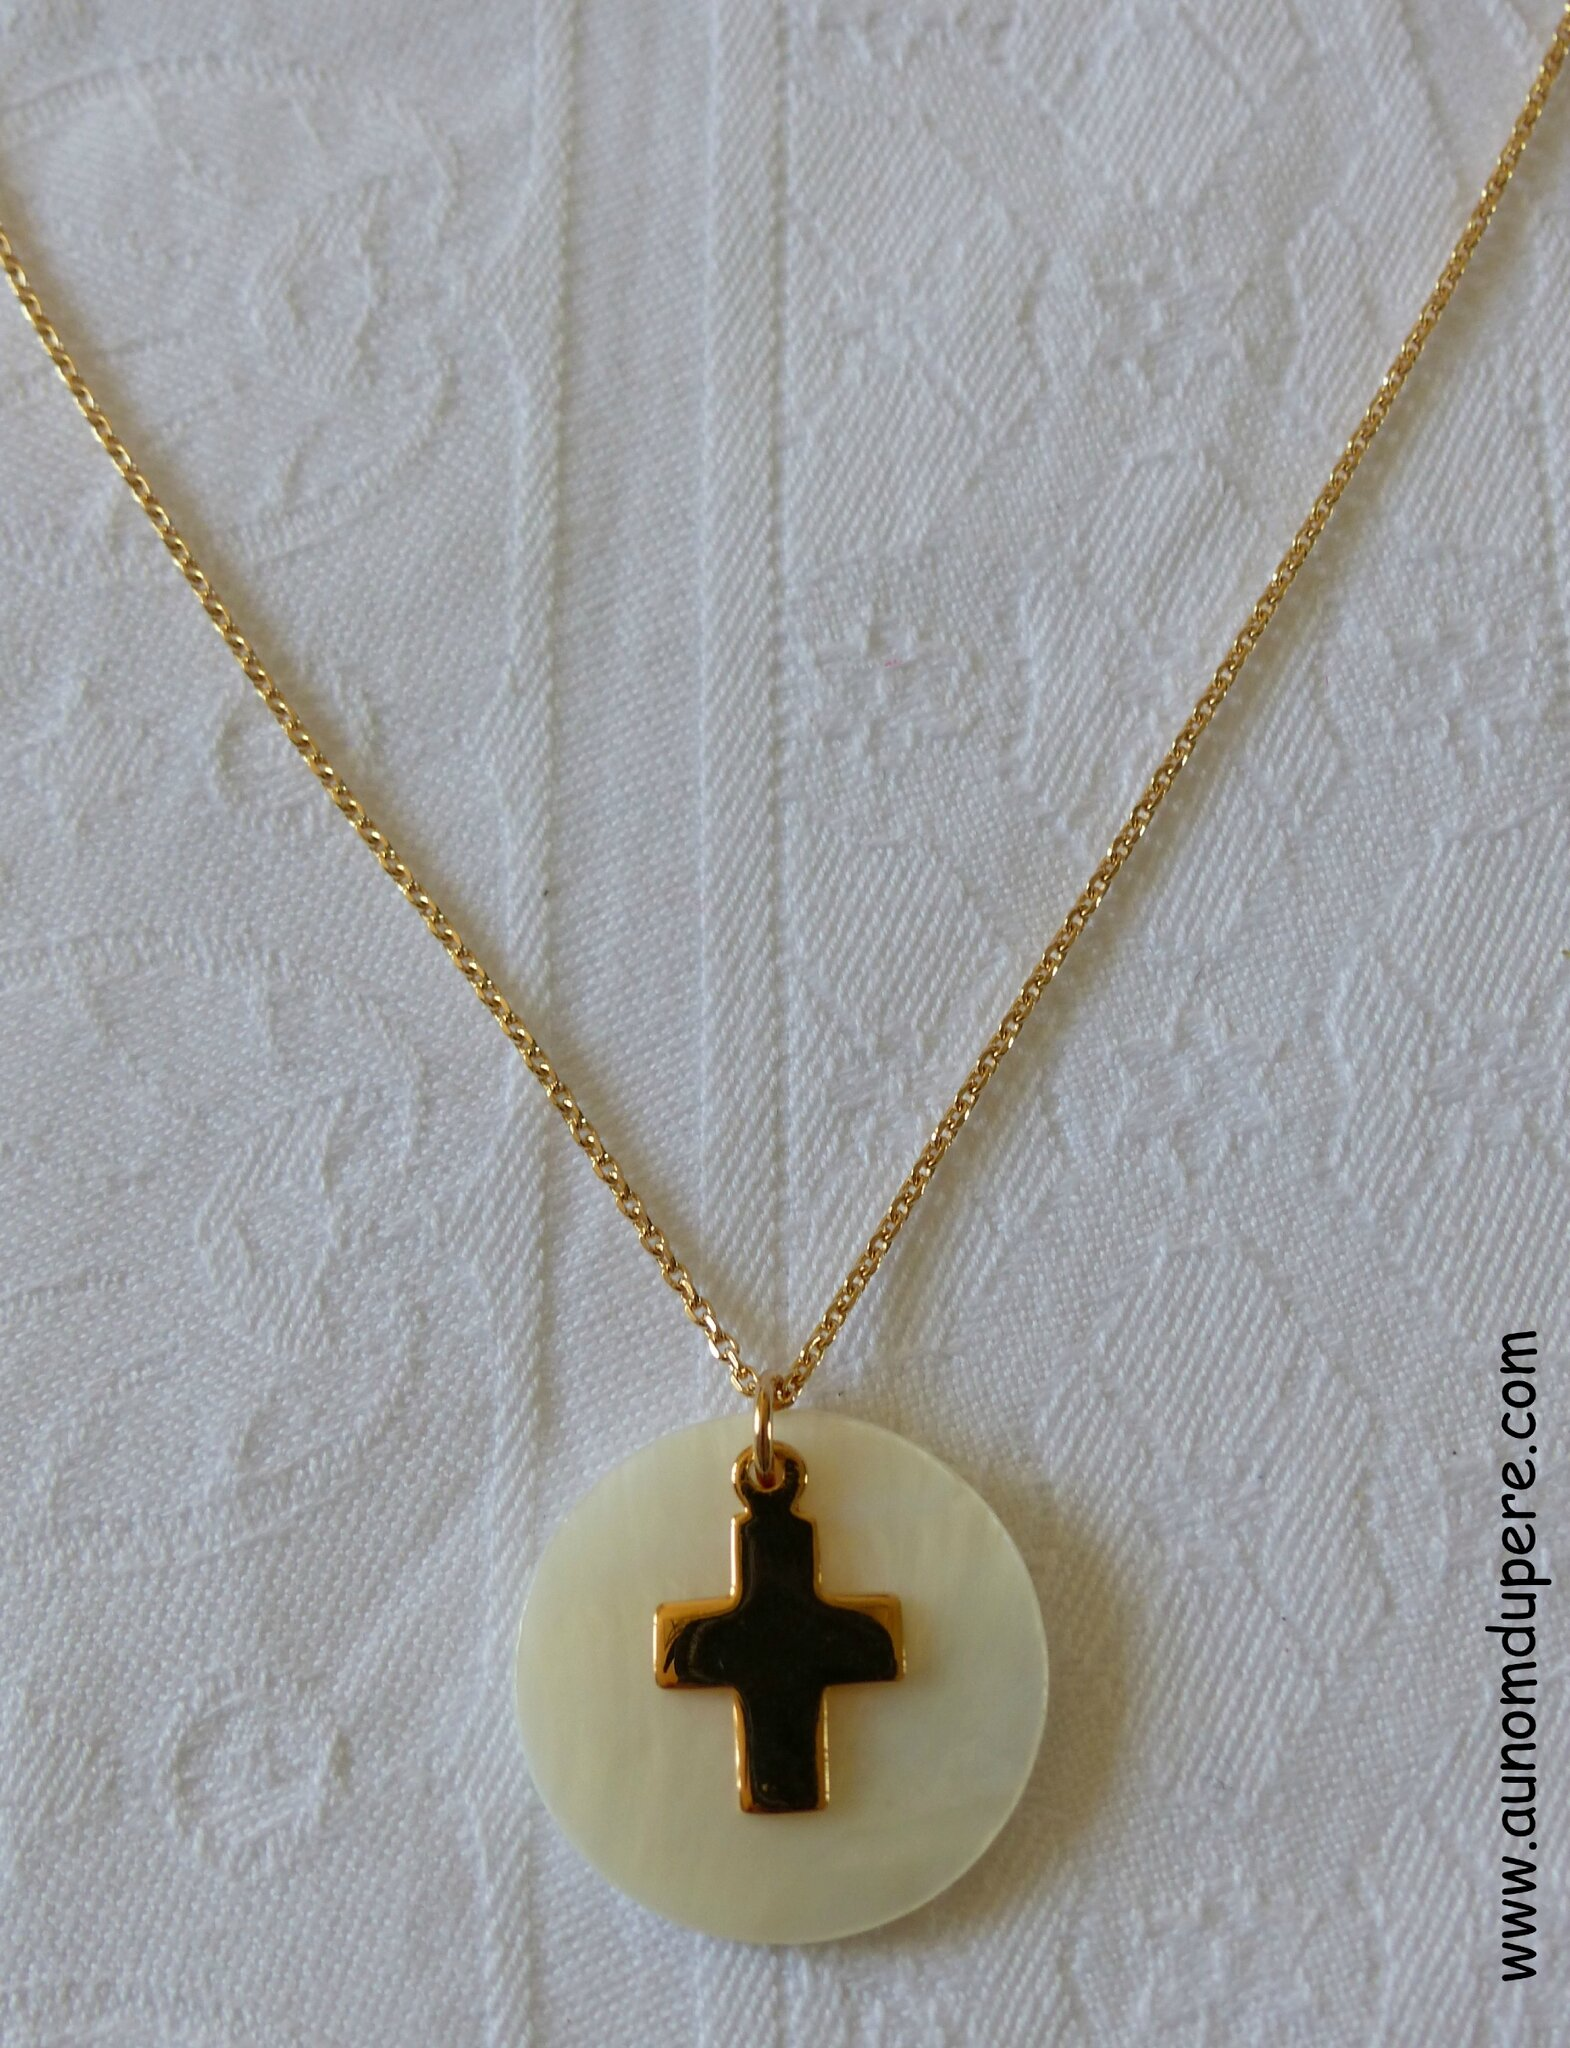 Collier de Communion (plaqué or) - 42 €